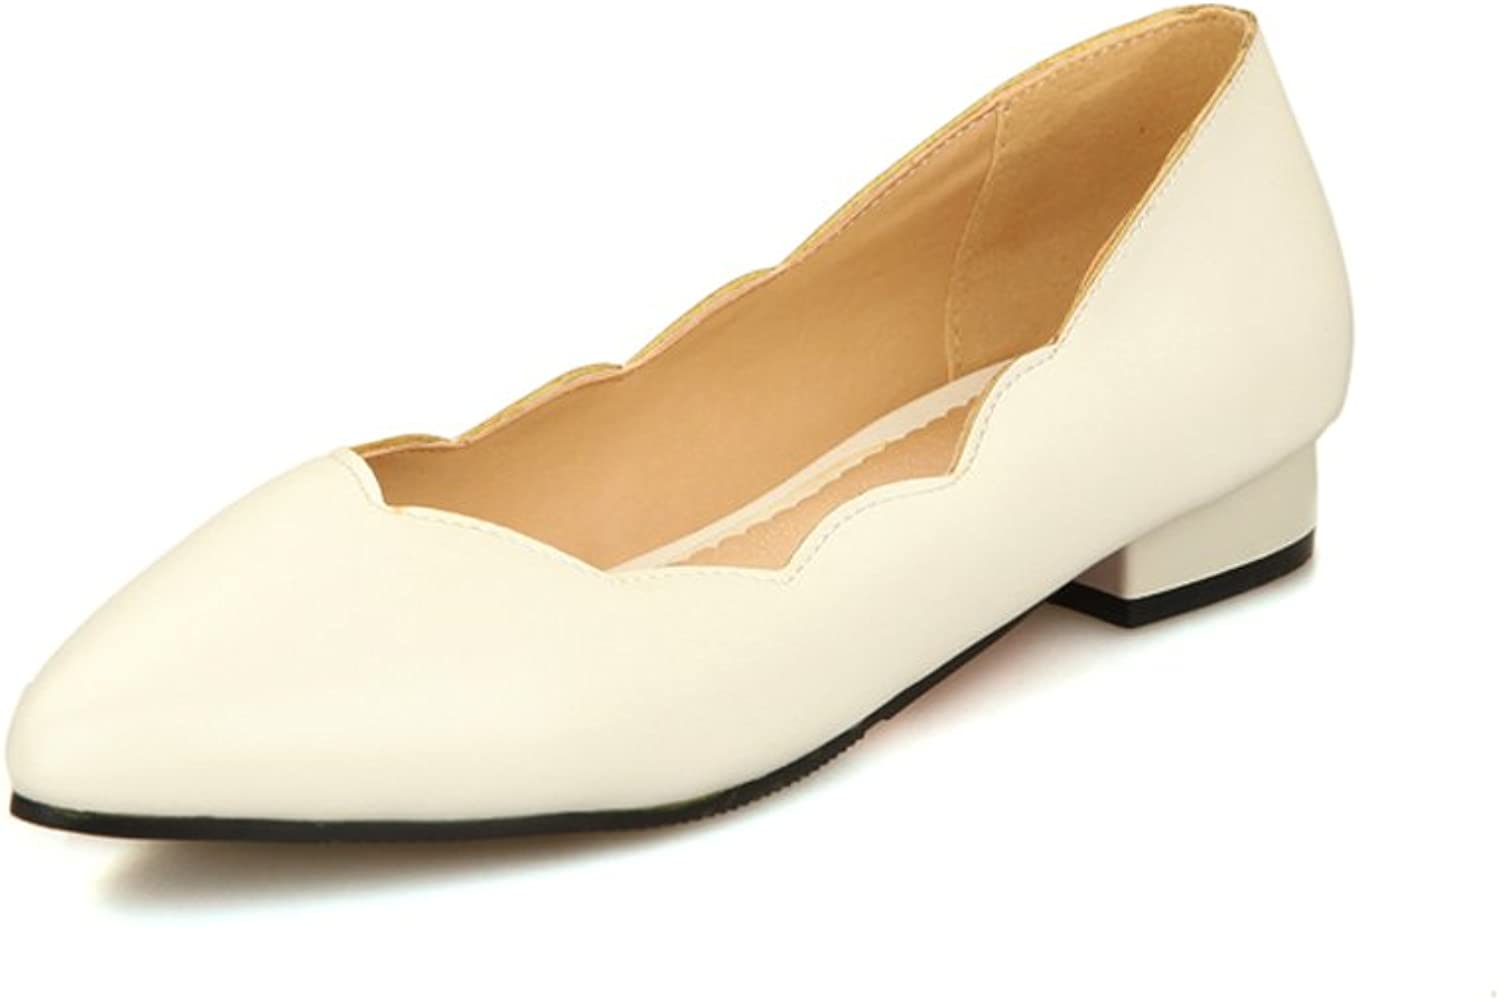 Cuckoo Ladys Elegant Low Heel Pointed Toe Pumps Patent PU Leather Court shoes